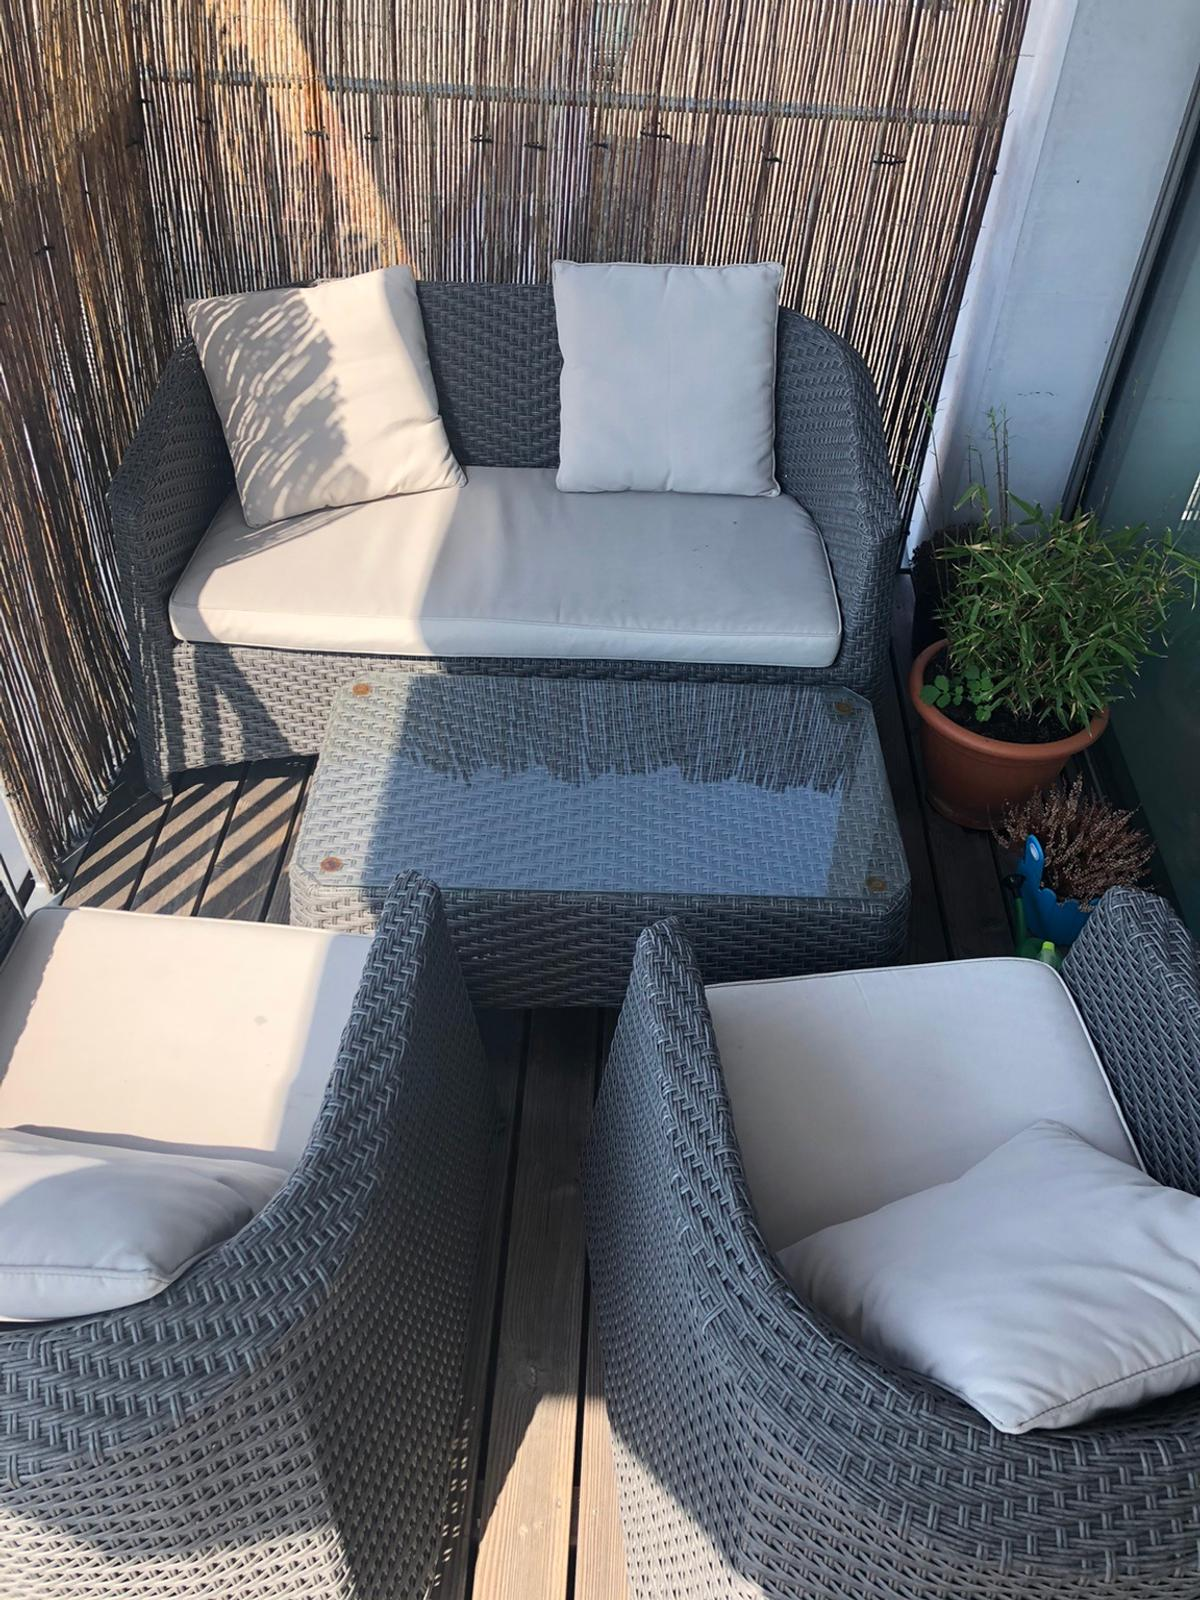 Lounge Möbel Wetterfest Lounge In 8047 Zürich For Chf 200.00 For Sale | Shpock